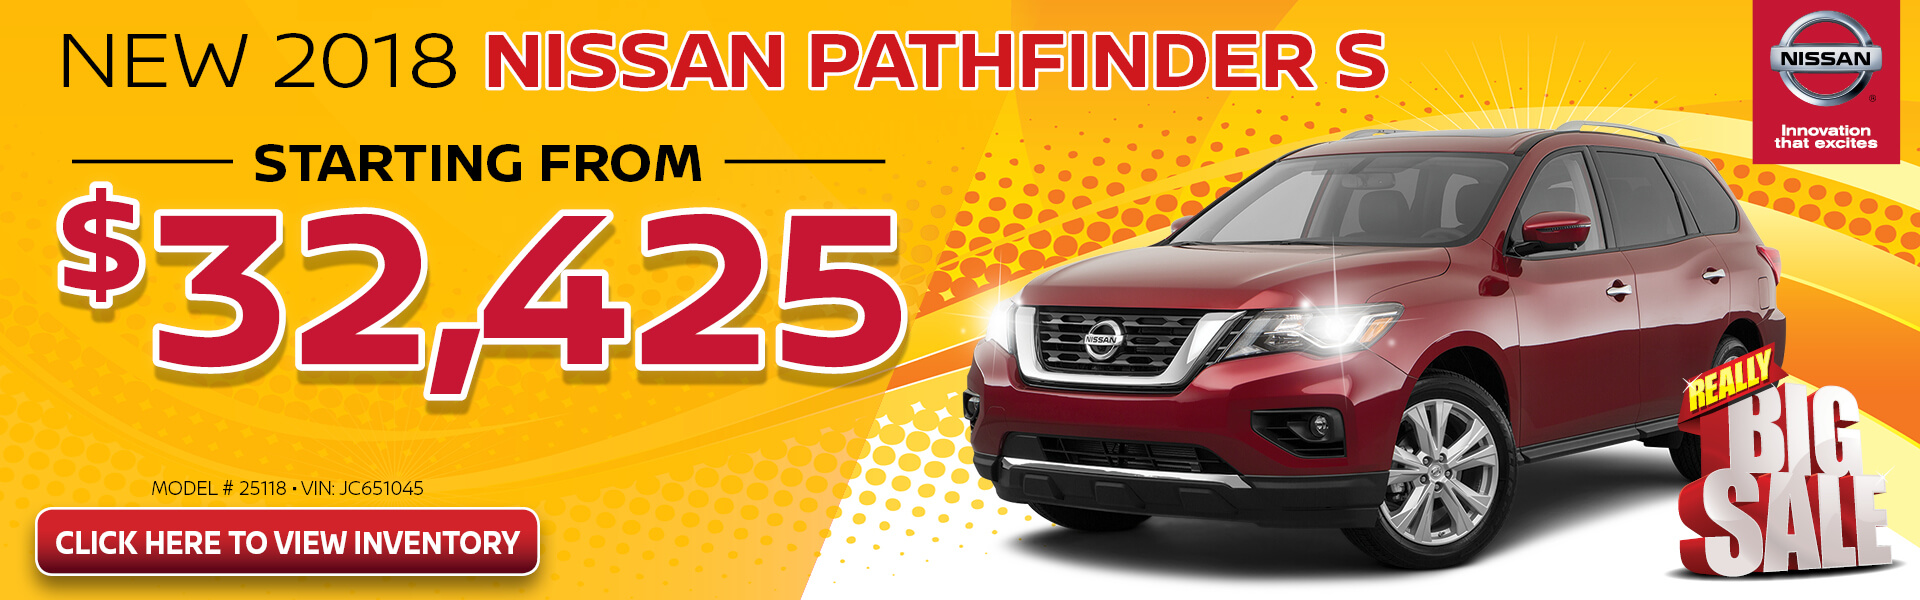 Nissan Pathfinder $32,425 Purchase